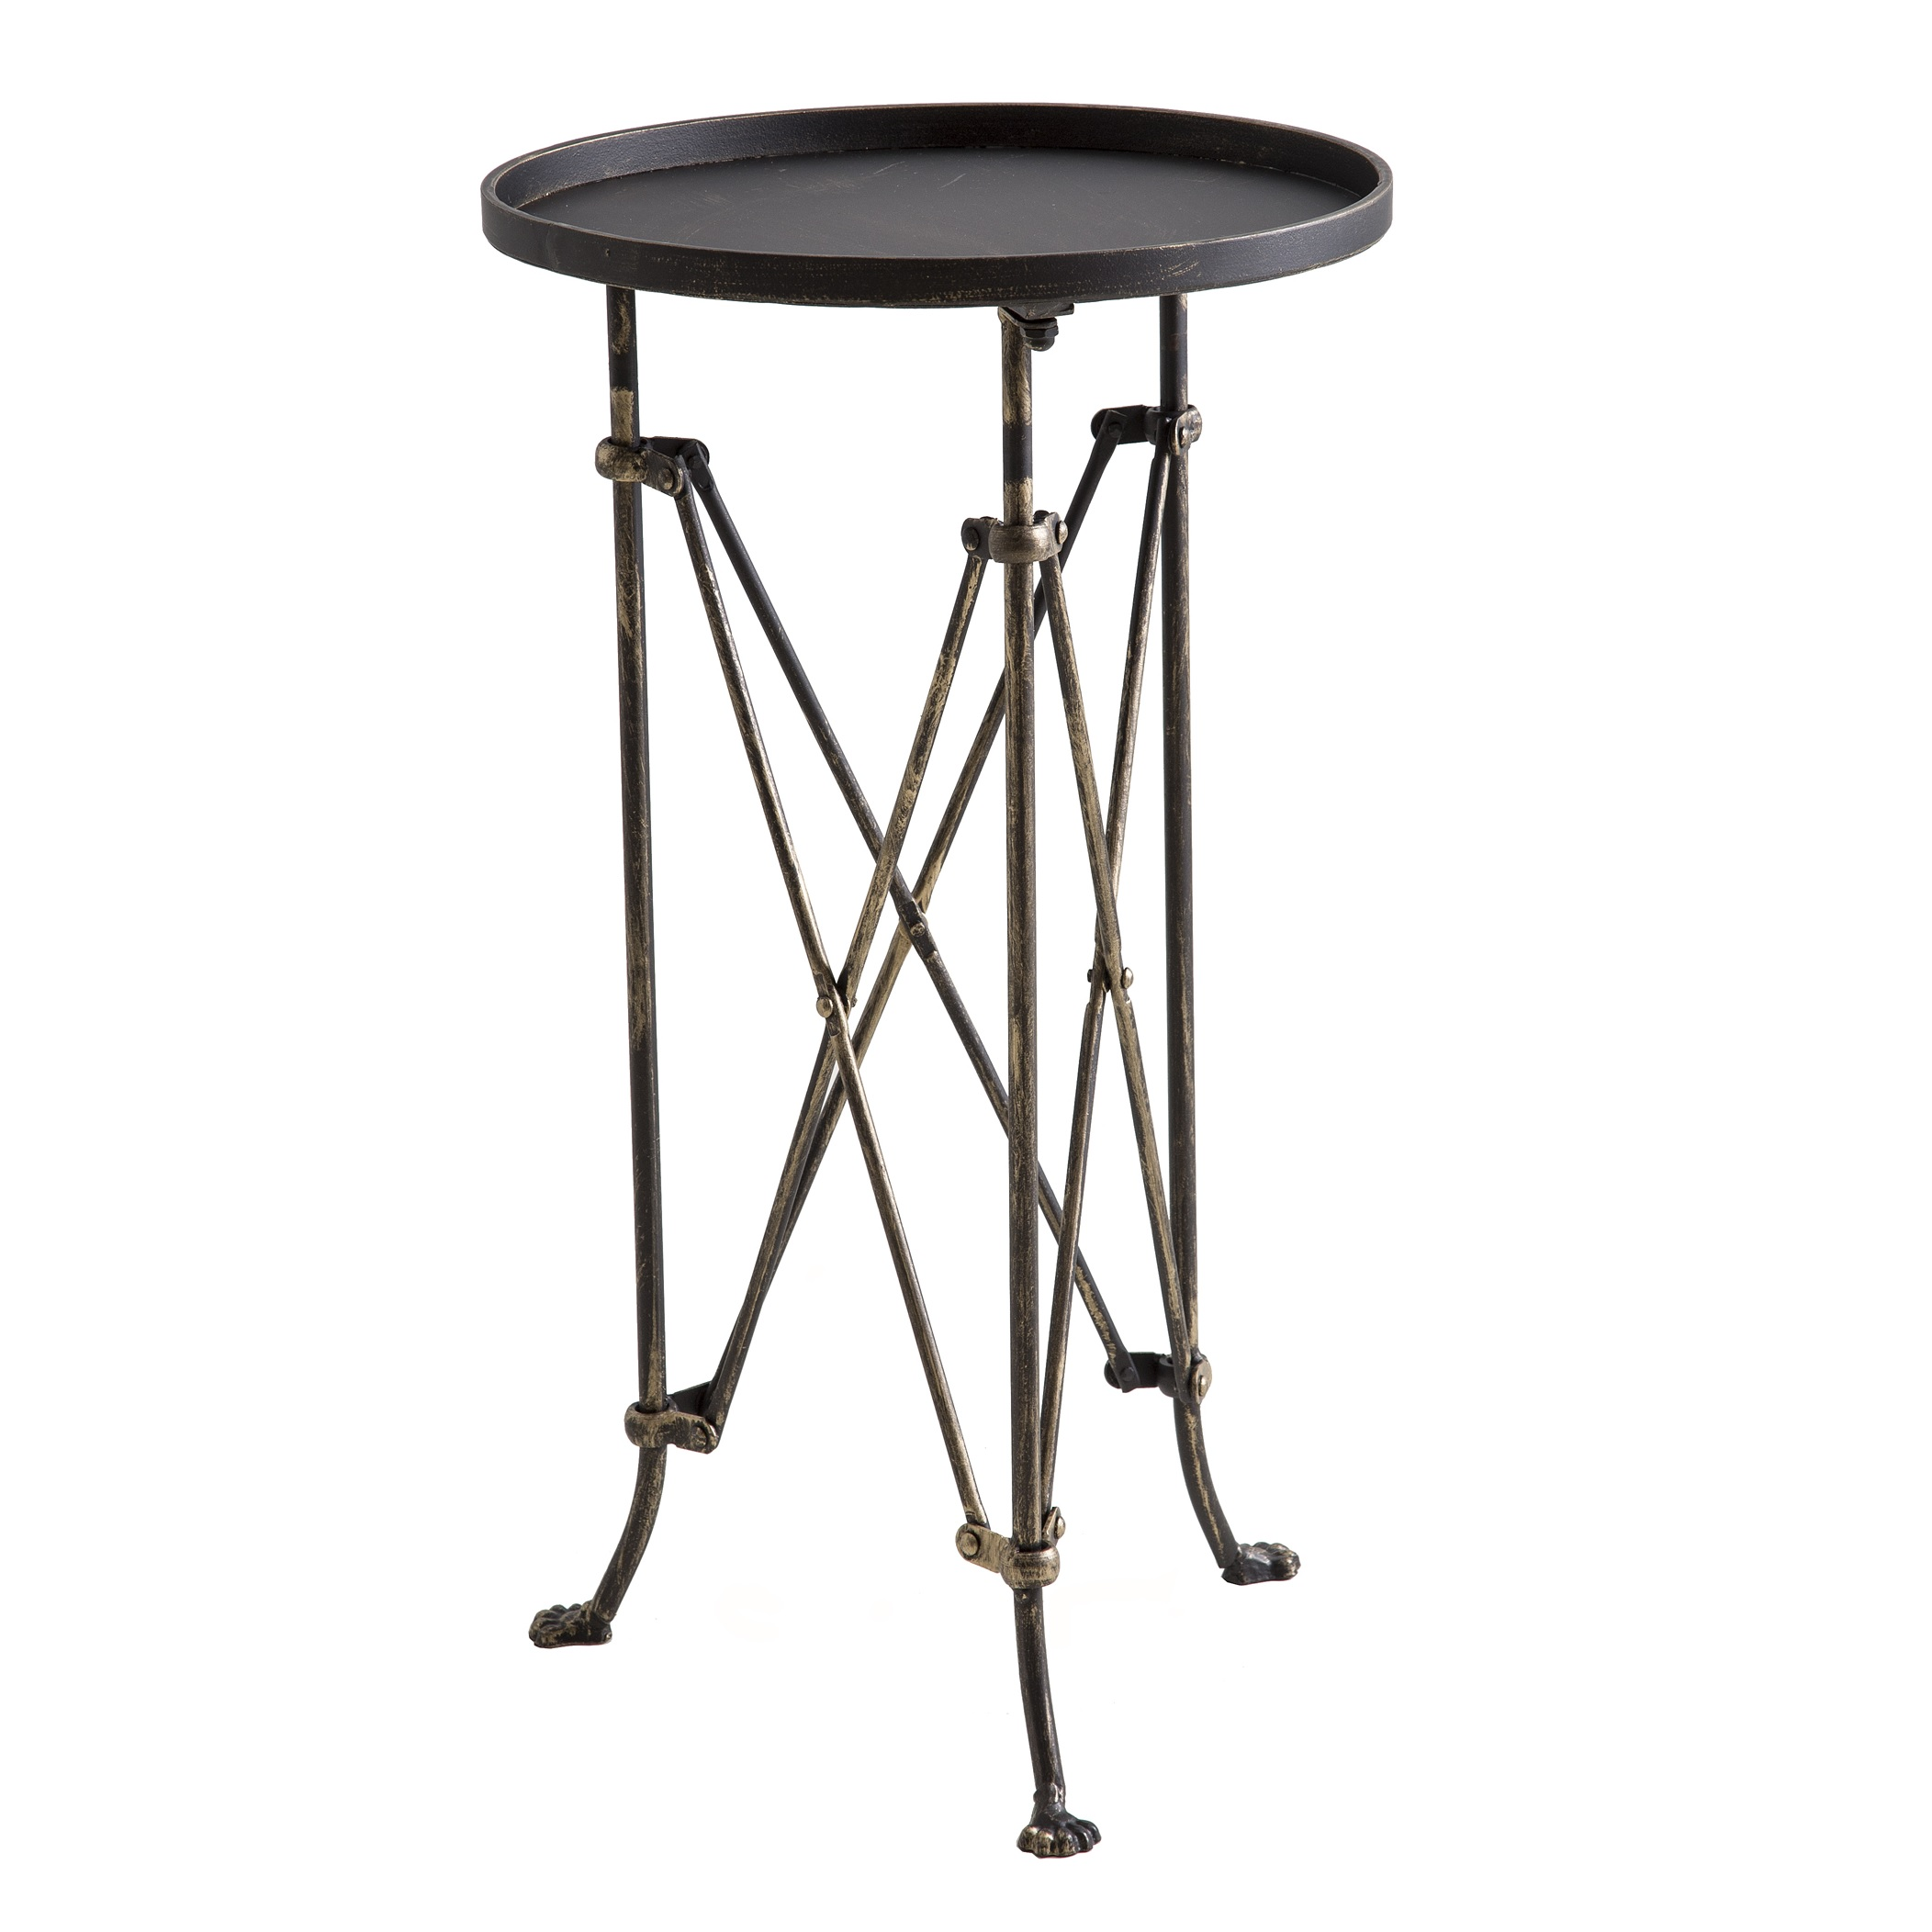 metal drink table lam bespoke yellow accent tables bronze ashley furniture white dresser homesense bar stools small outdoor wrought iron tea pier imports end pottery barn leather